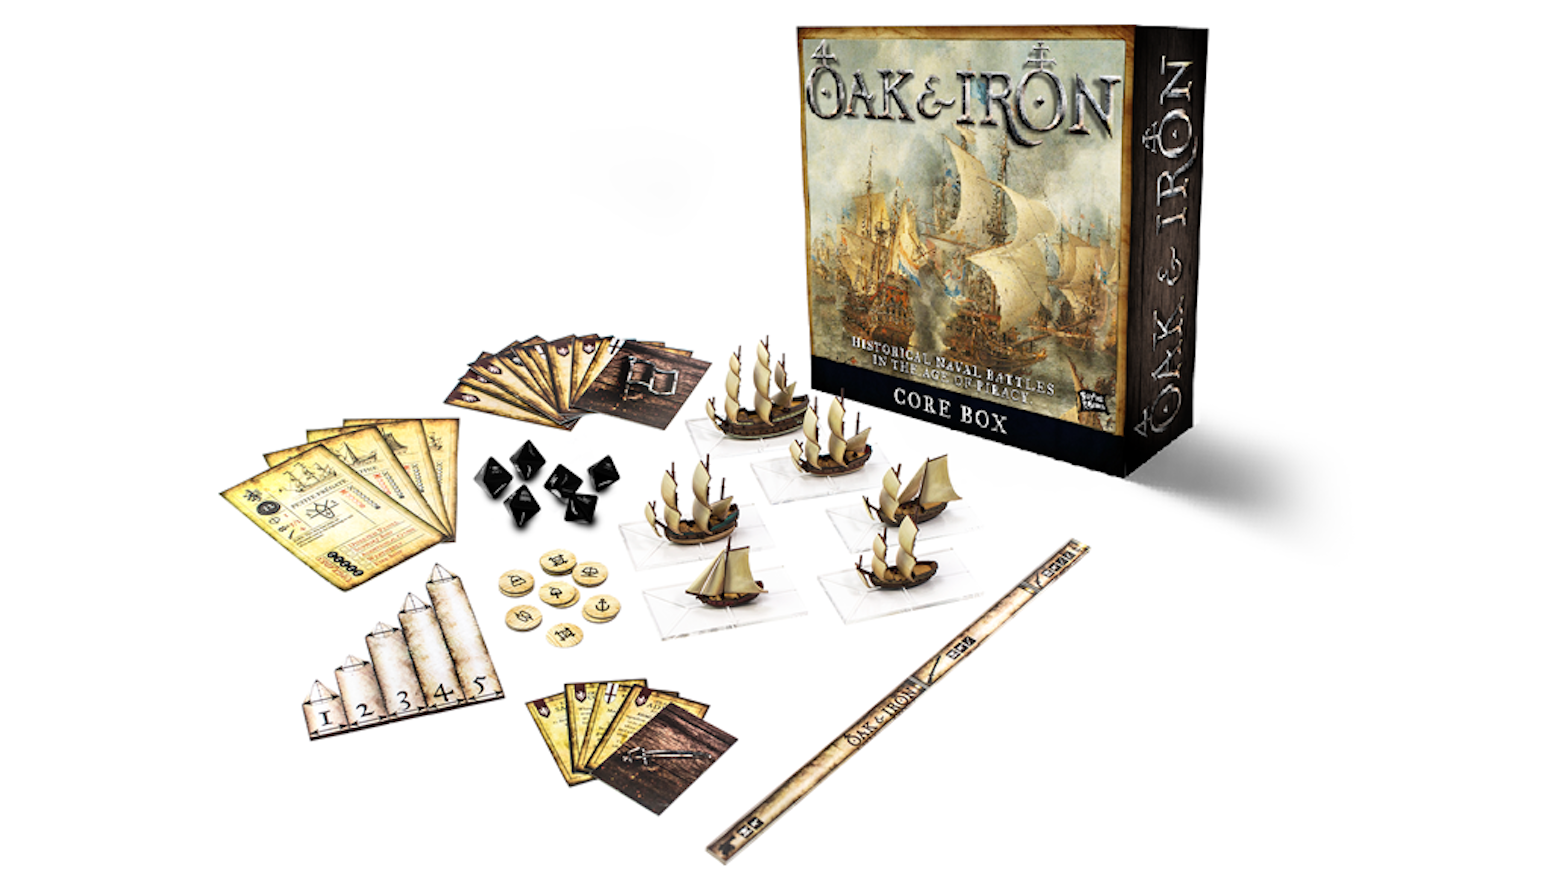 A fleet-based naval strategy game set during the Golden Age of Pirates and Sail using 1/600th scale miniatures.